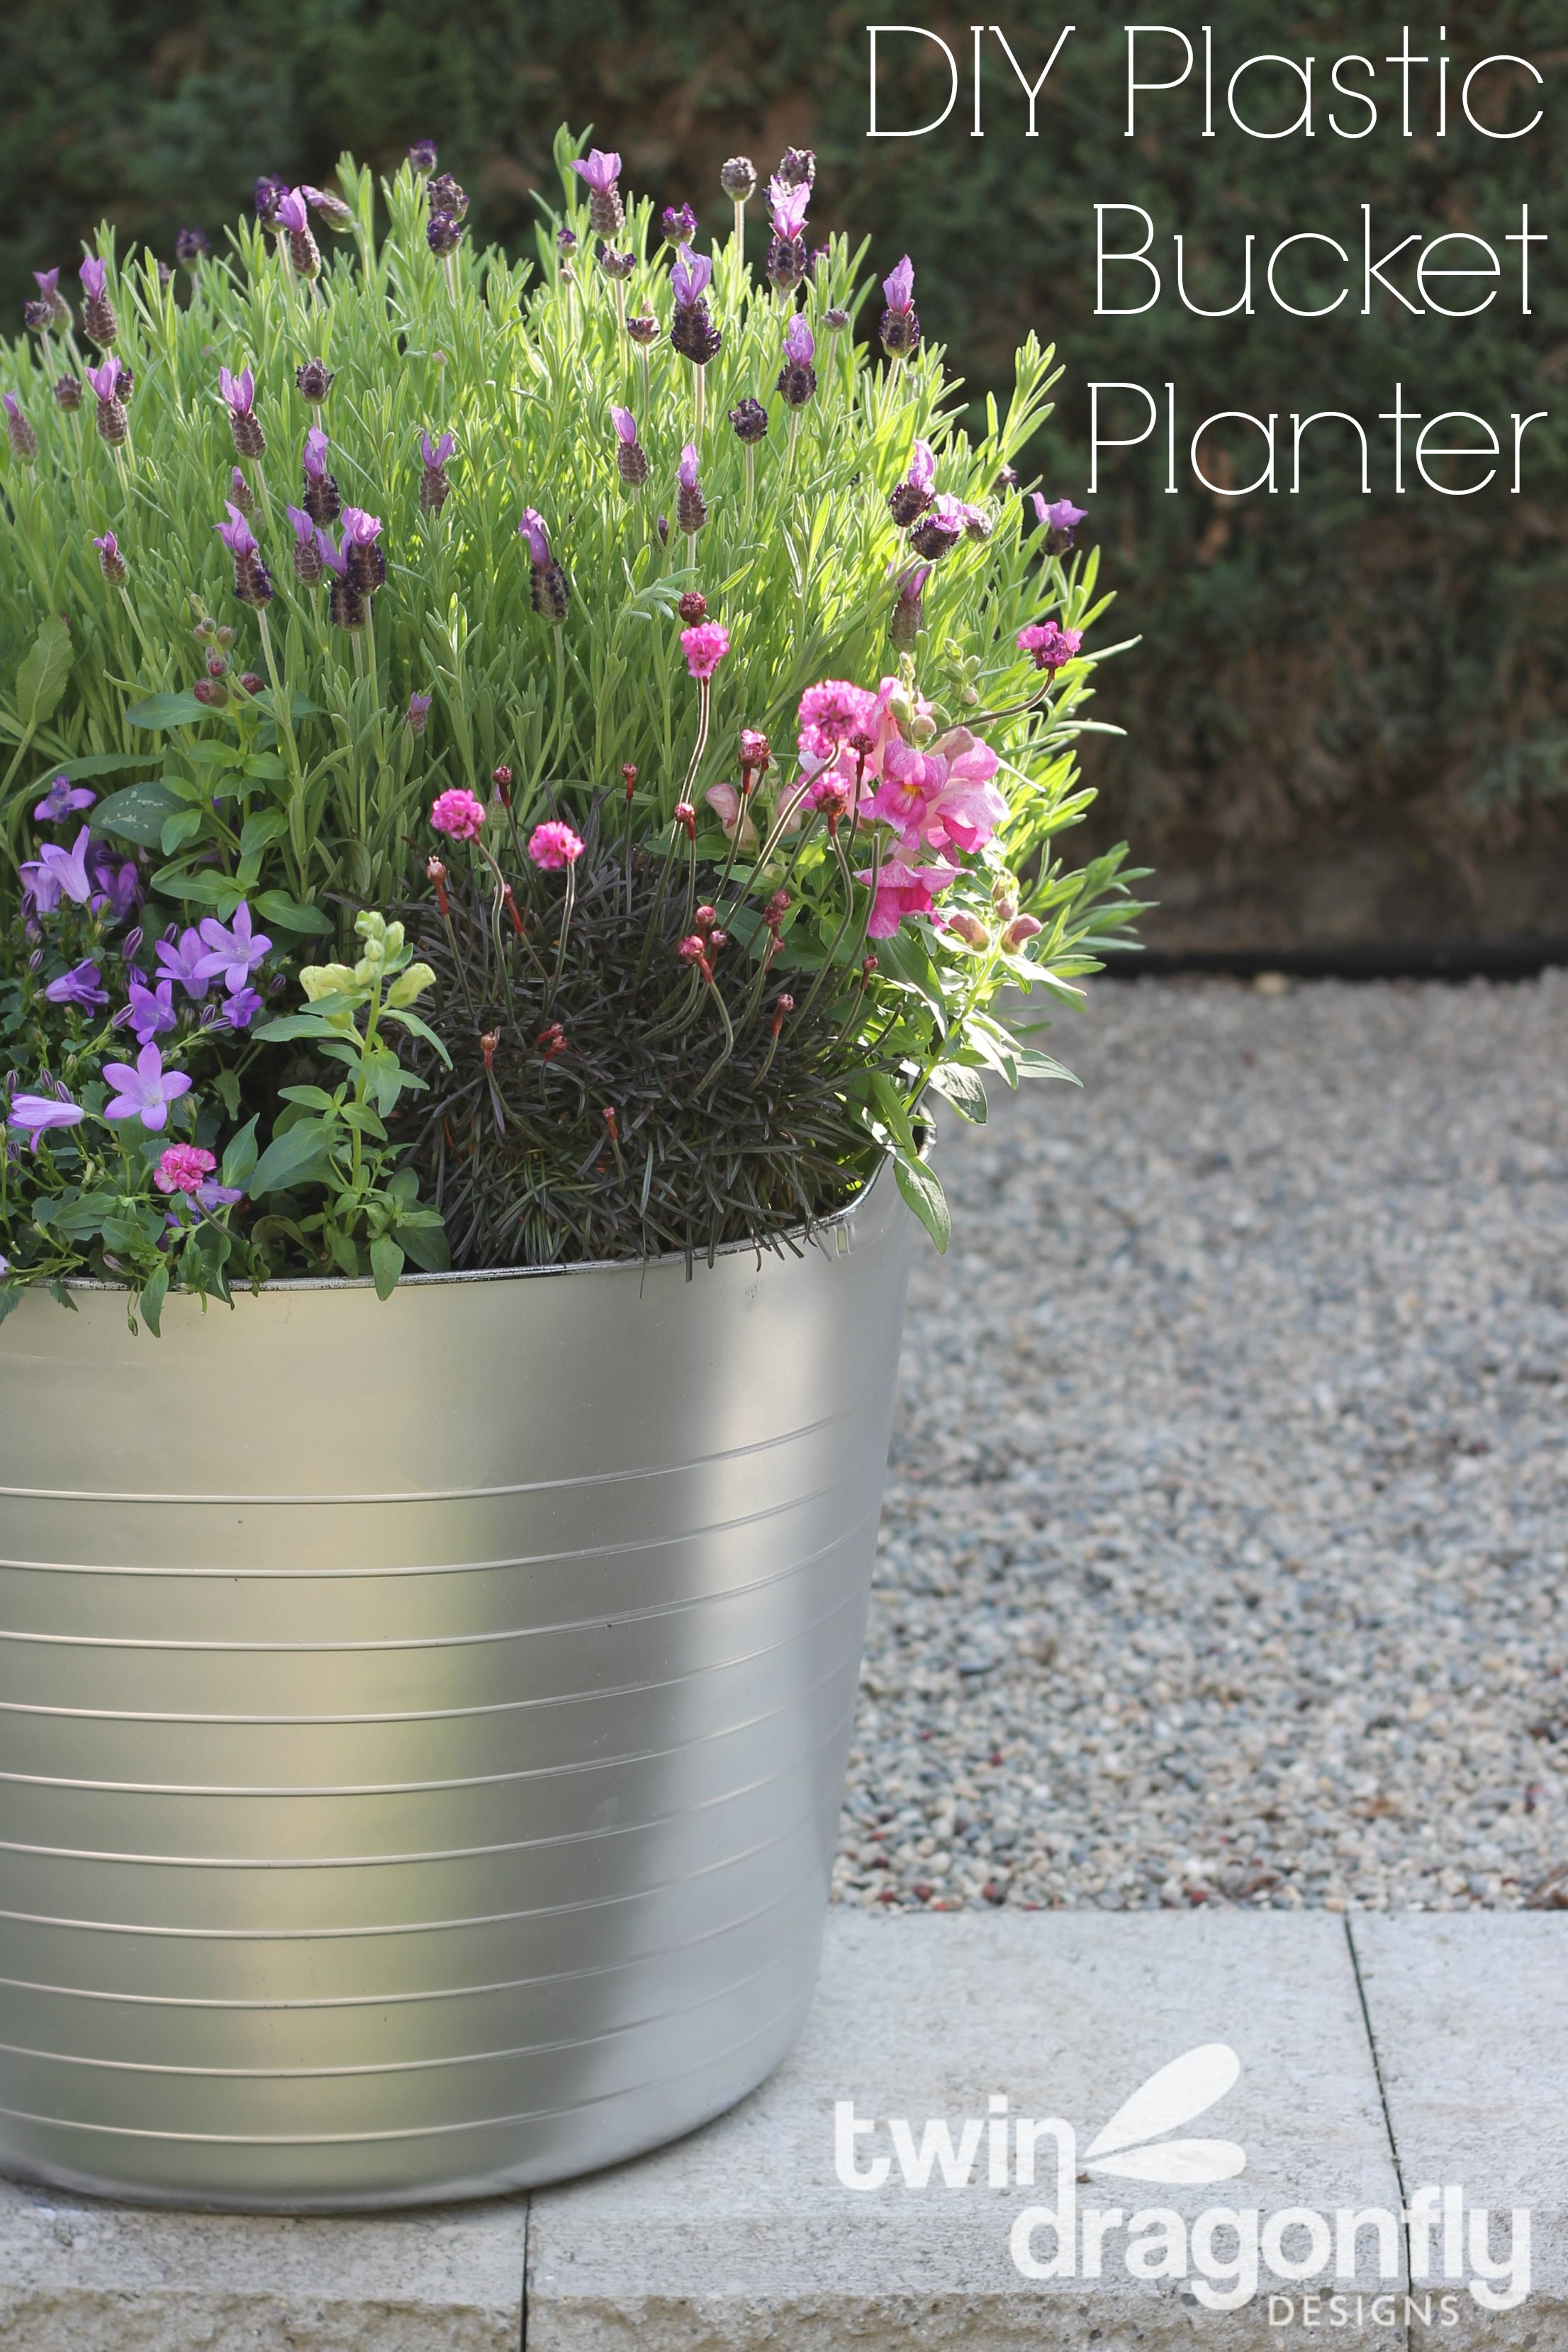 Marvelous Create A Faux Galvanized Planter With A Plastic Bucket And Spray Paint!